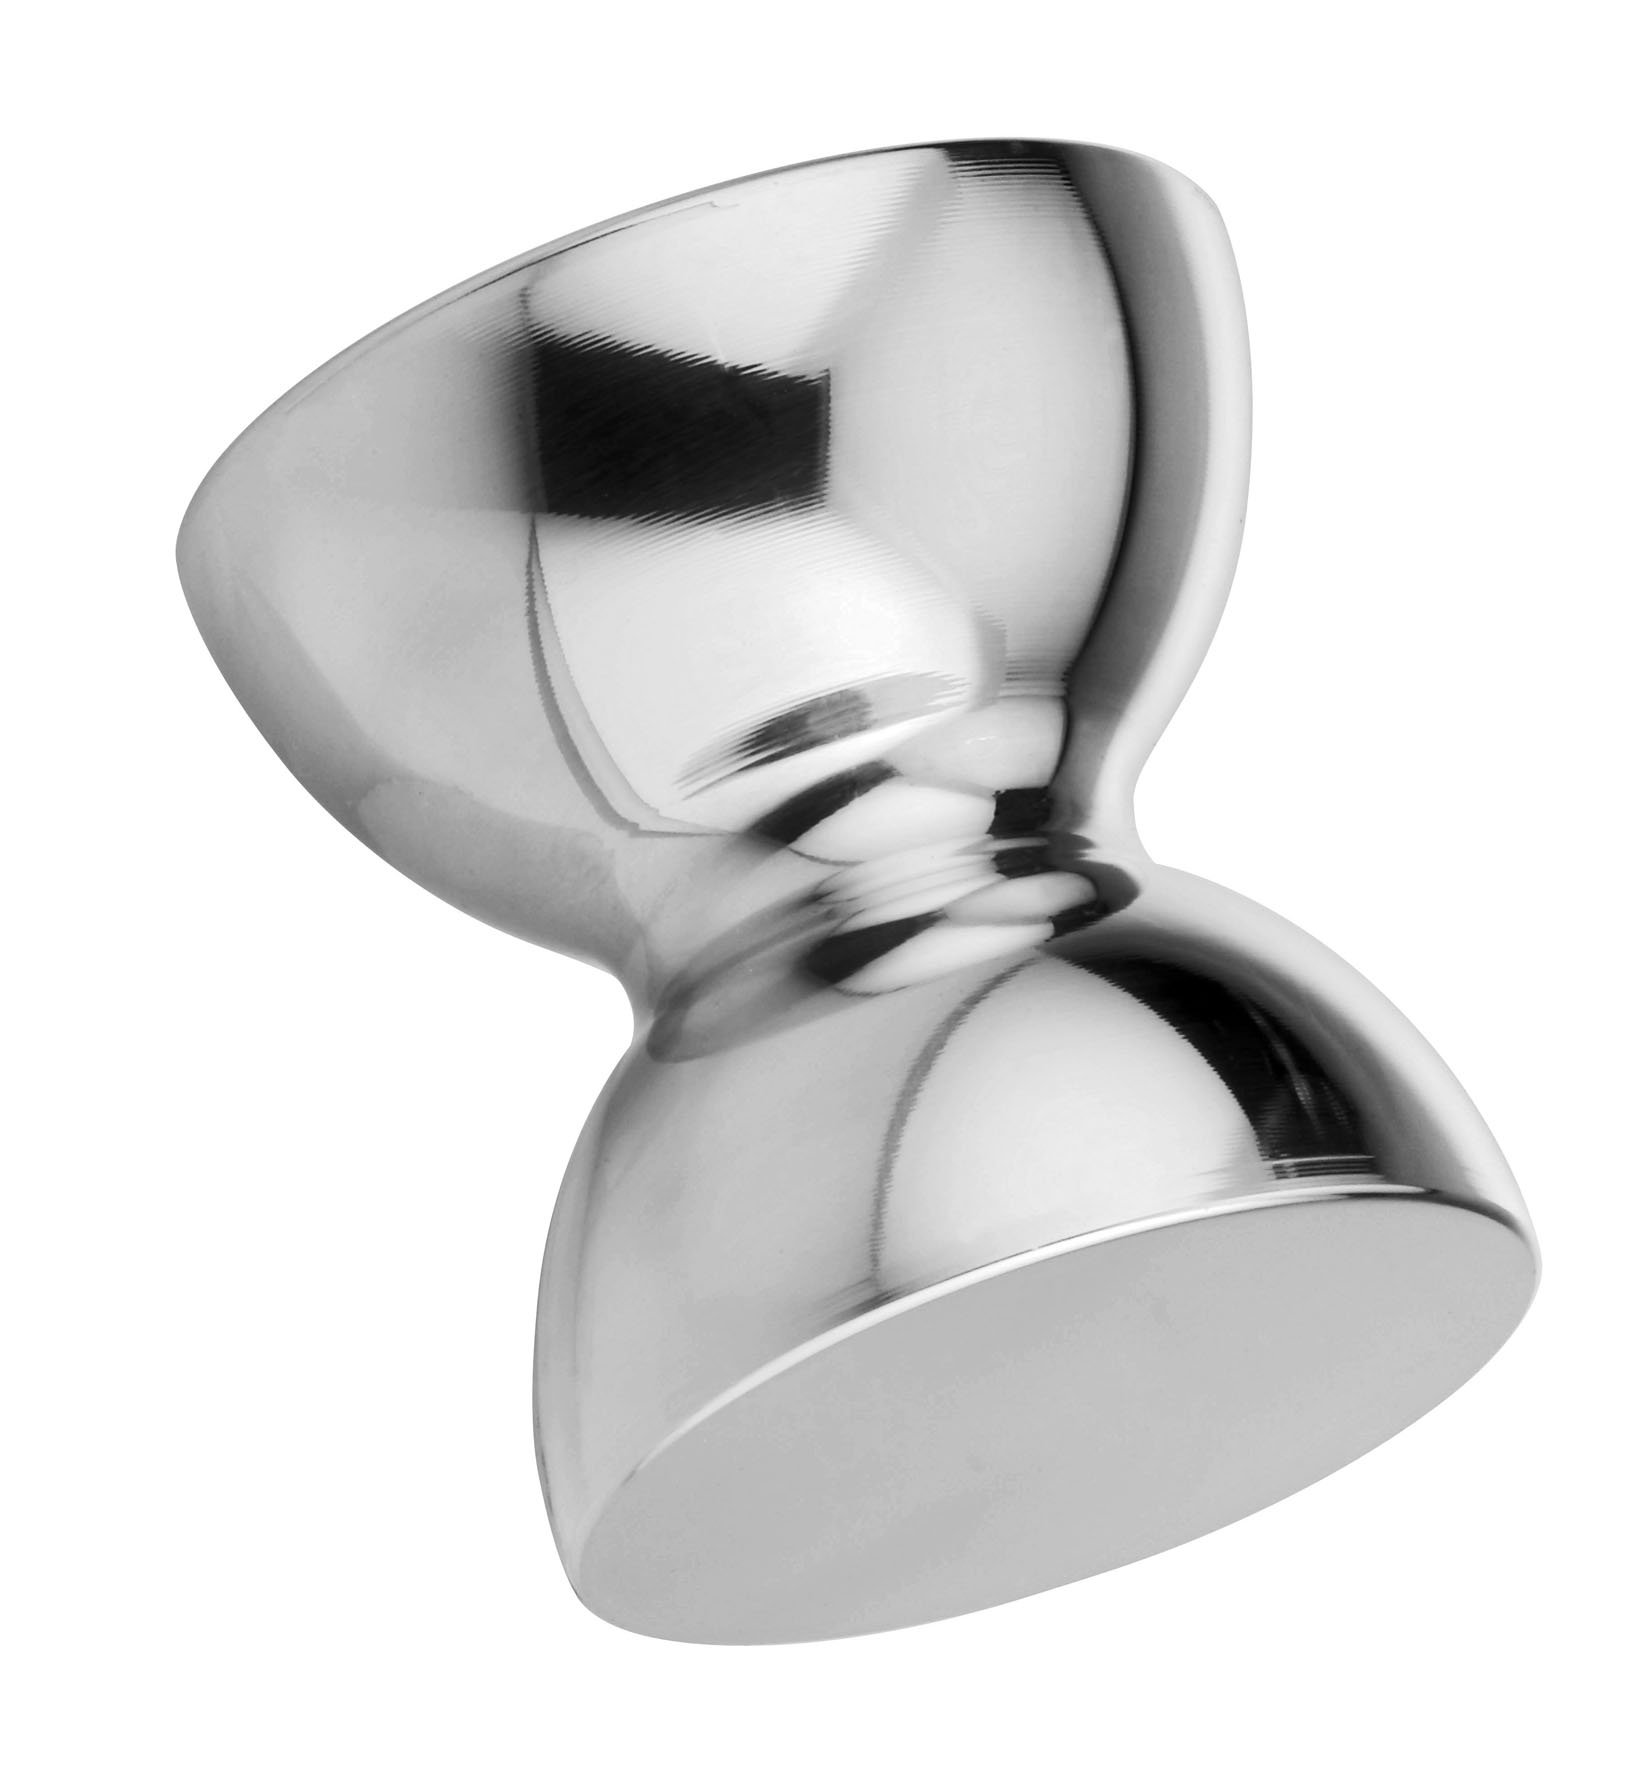 Motta 1470 Coffee Tamper with Double Flat Base, 53mm and 58mm by Motta